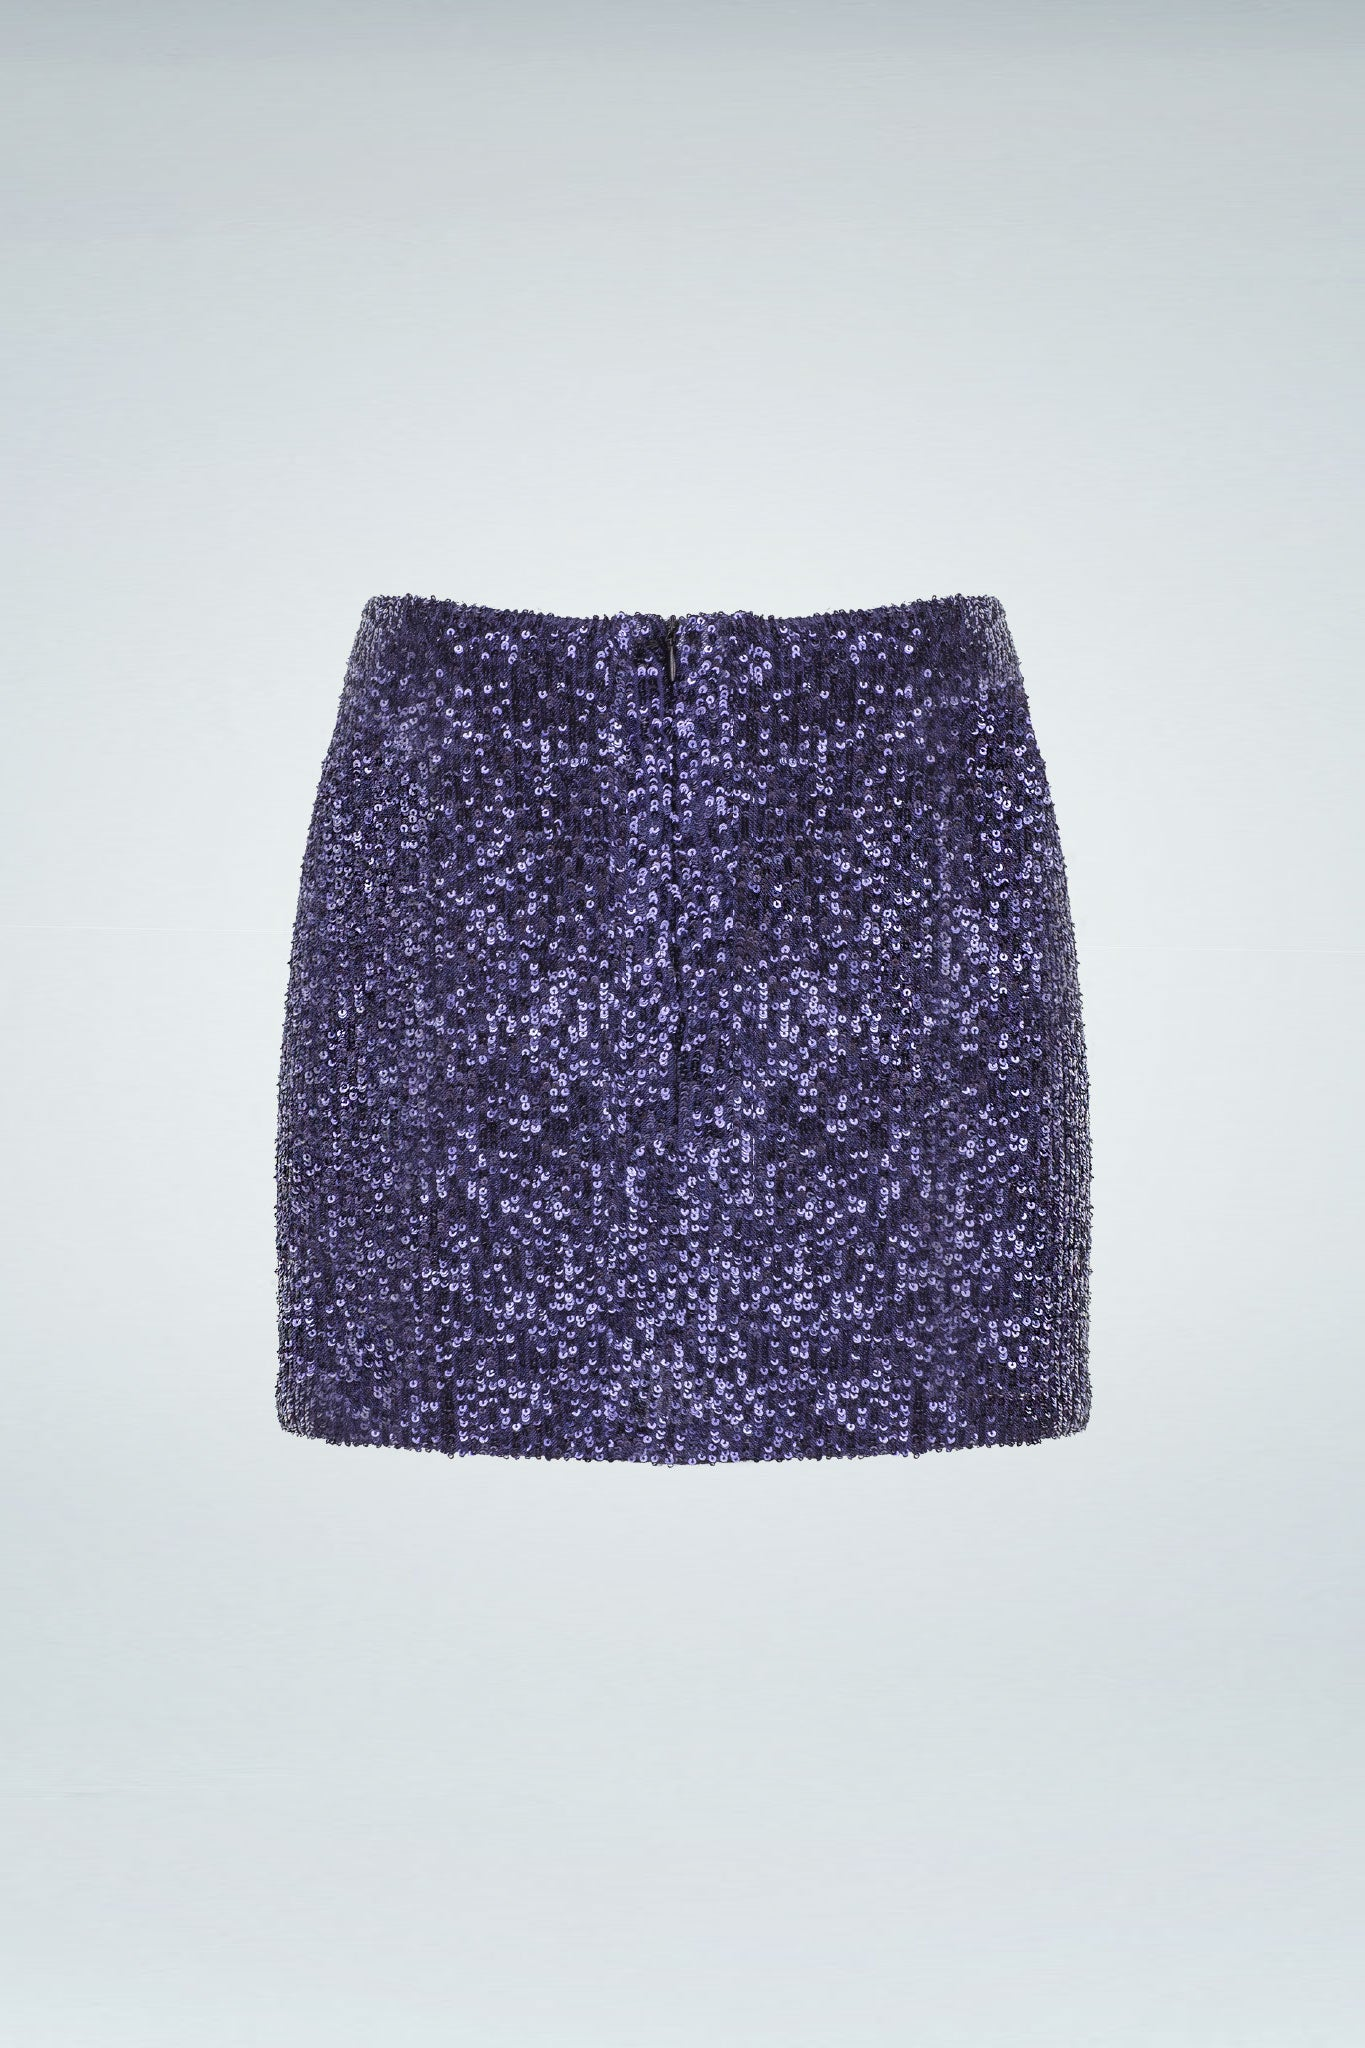 Sequinned Skirt - Navy Blue